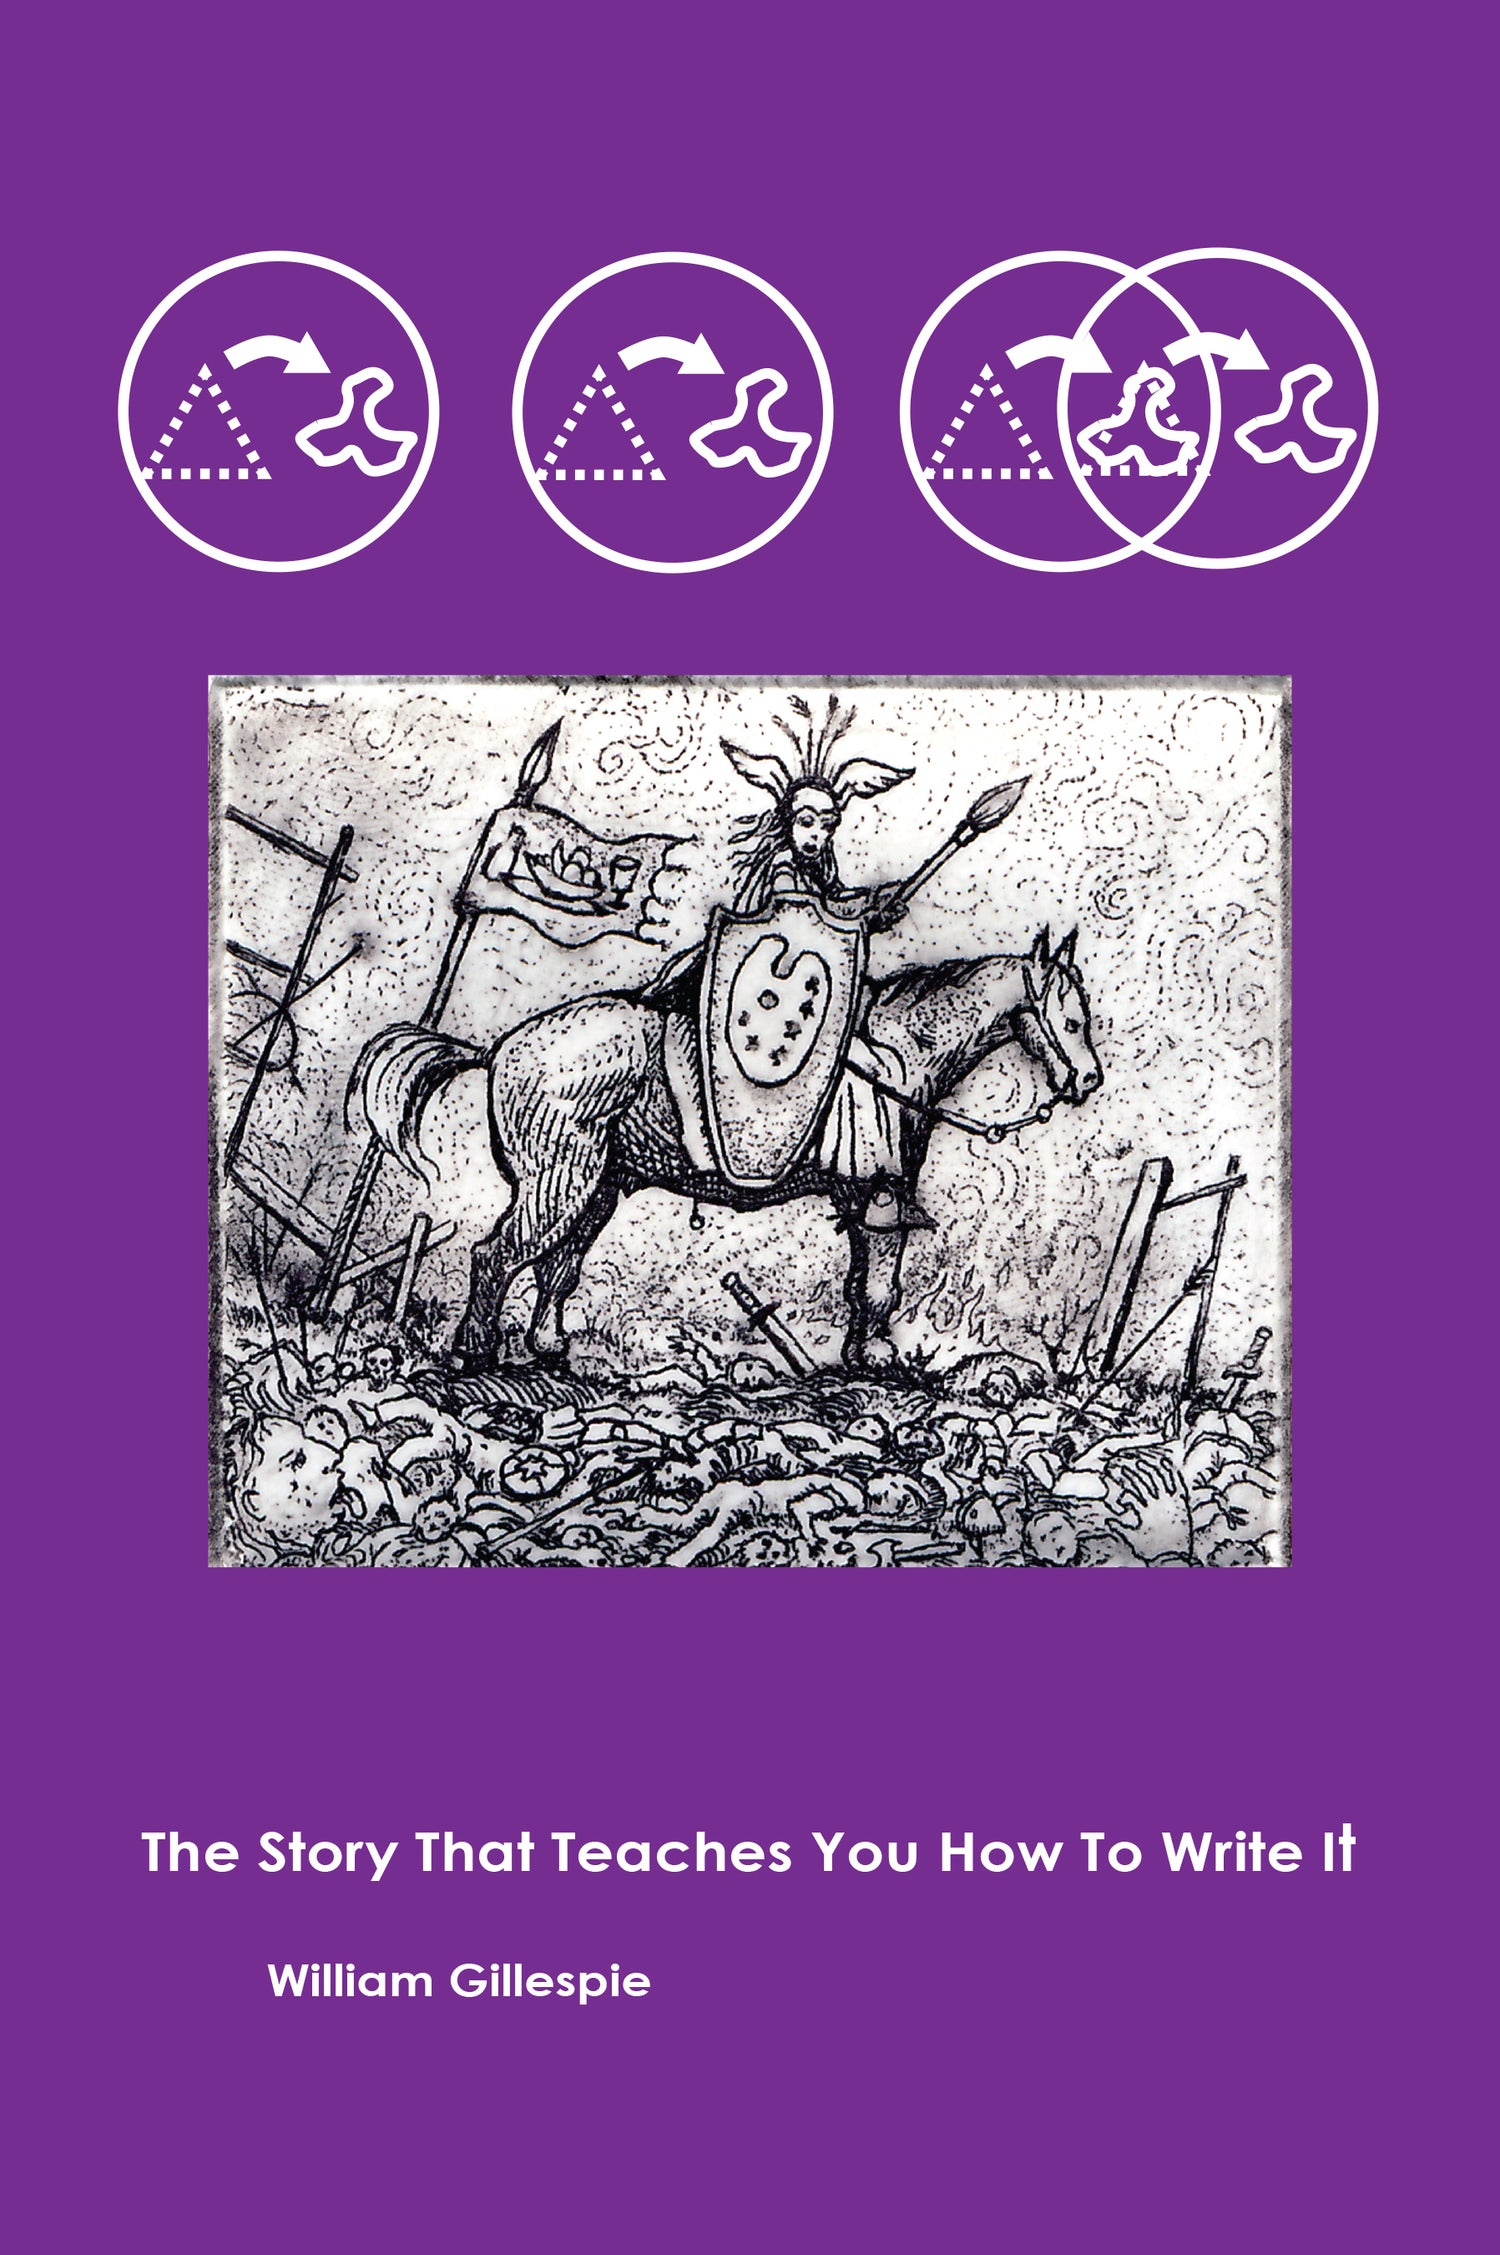 Image of The Story That Teaches You How To WrIte It, by William Gillespie